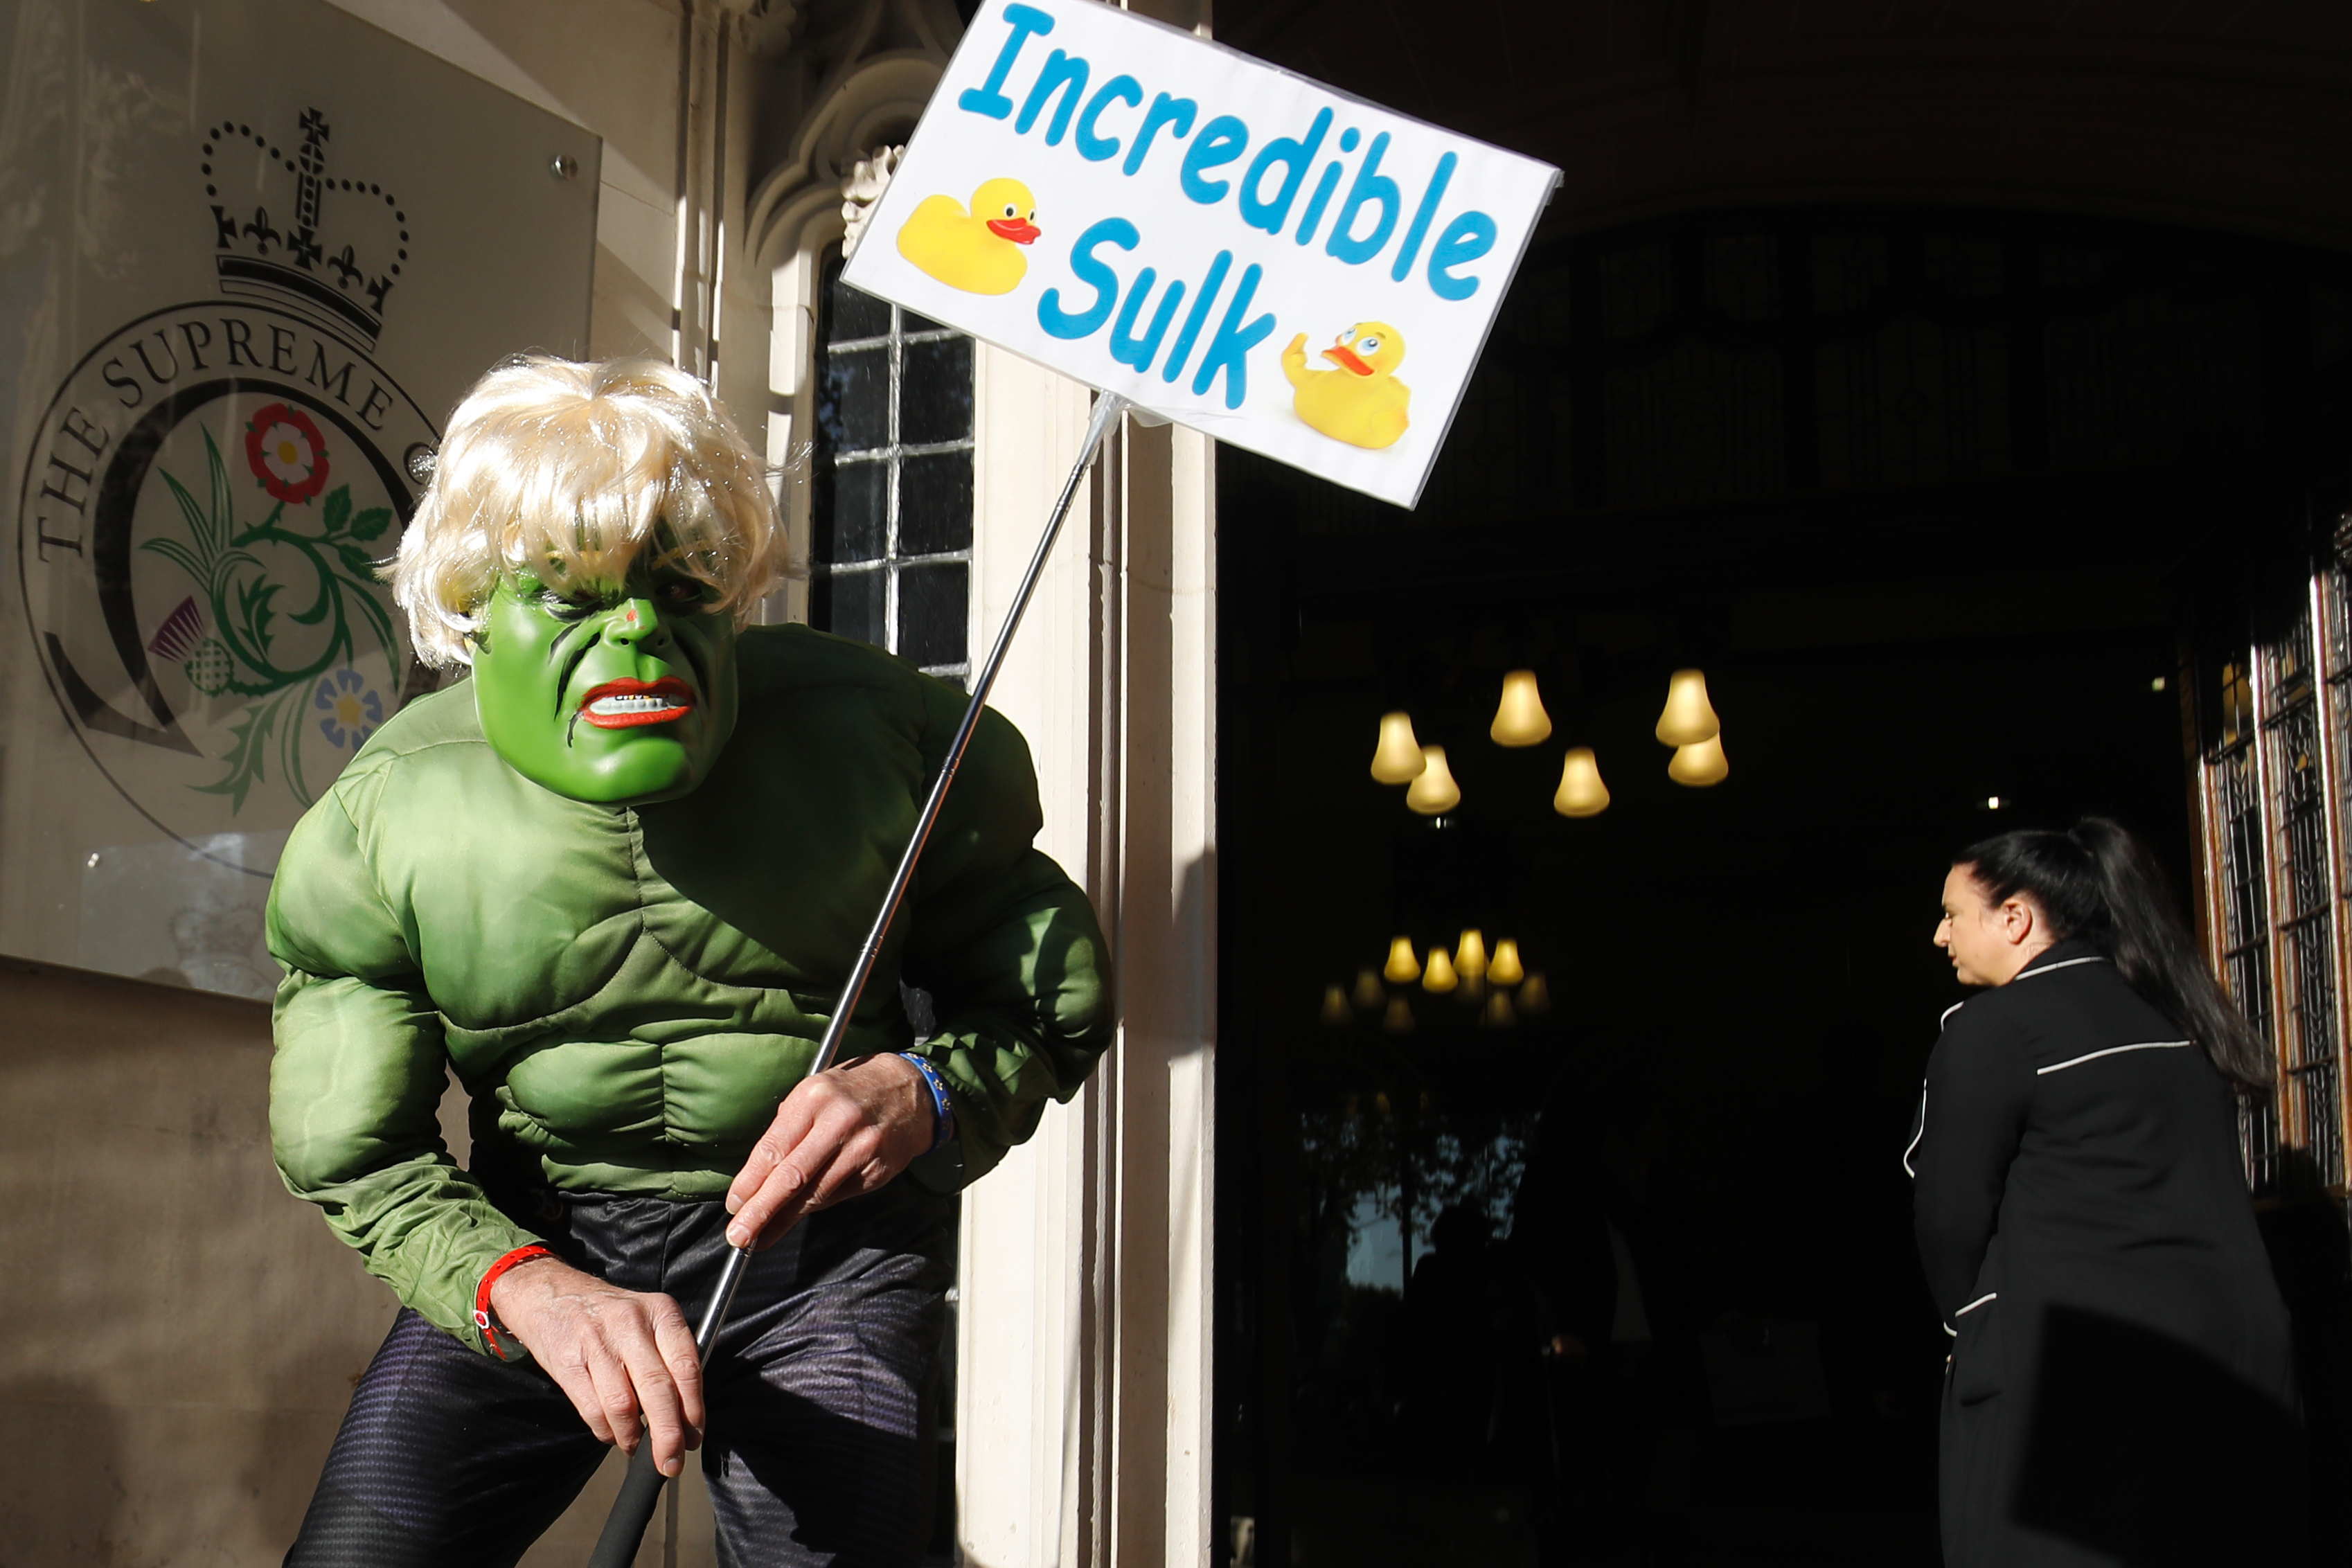 A protestor dressed as a cross between Boris Johnson and the Incredible Hulk outside the Supreme Court